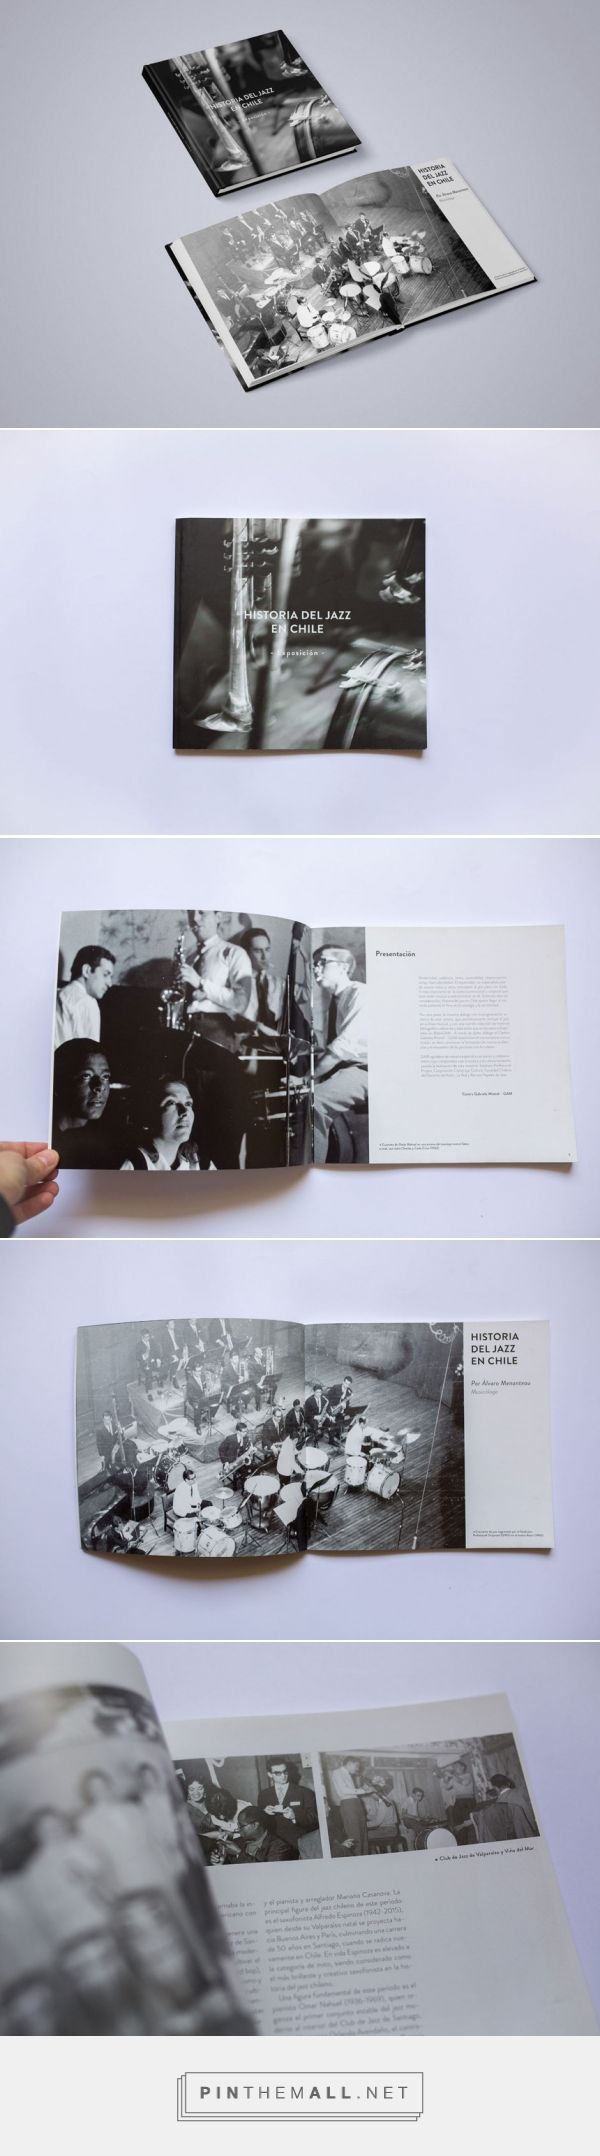 Catálogo de Jazz | Design by otrosperez.com  Catalog design for the Jazz exhibition at the Gabriela Mistral Center, which was born from the Jazz Festival organized by the Corporacion Construye Cultura. - created via https://pinthemall.net